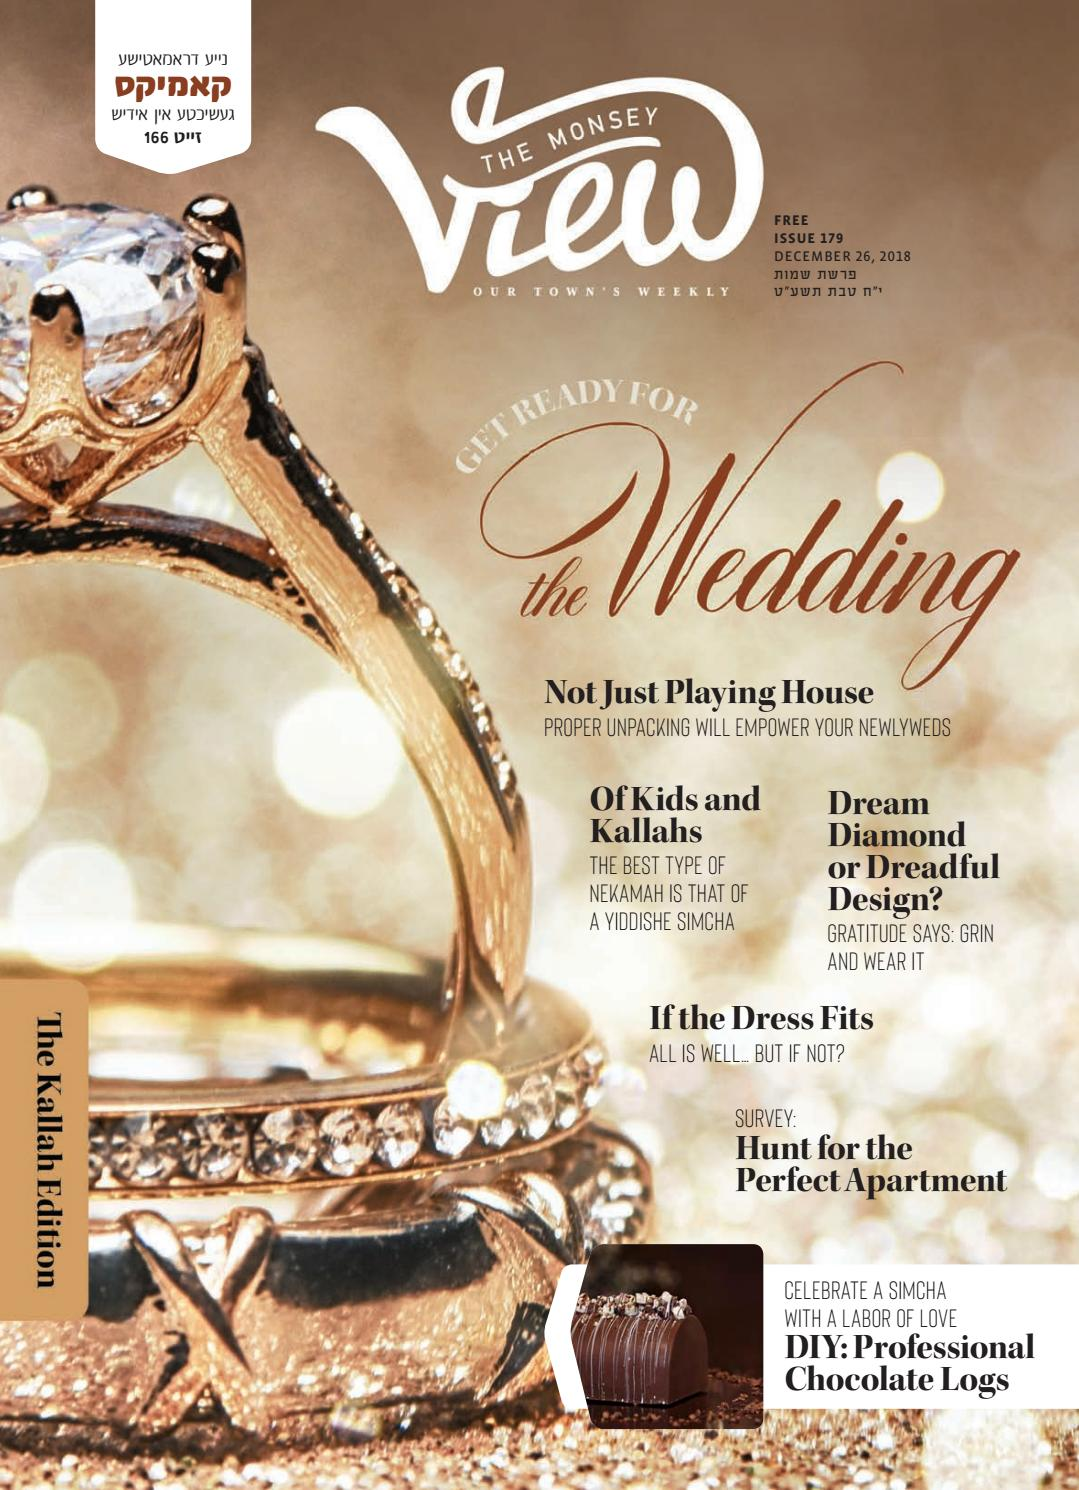 20d1fd05405d1 Issue 179 by The Monsey View - issuu